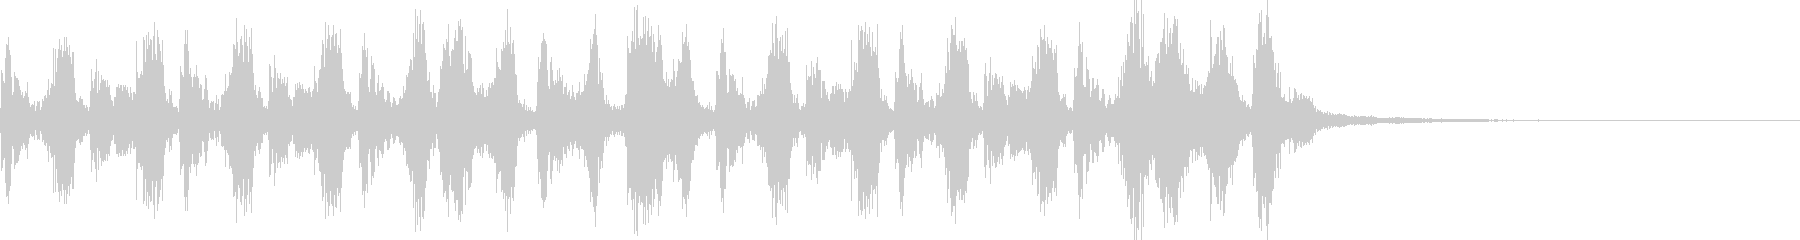 Comical accordion jingle running in a hurry's unreproduced waveform